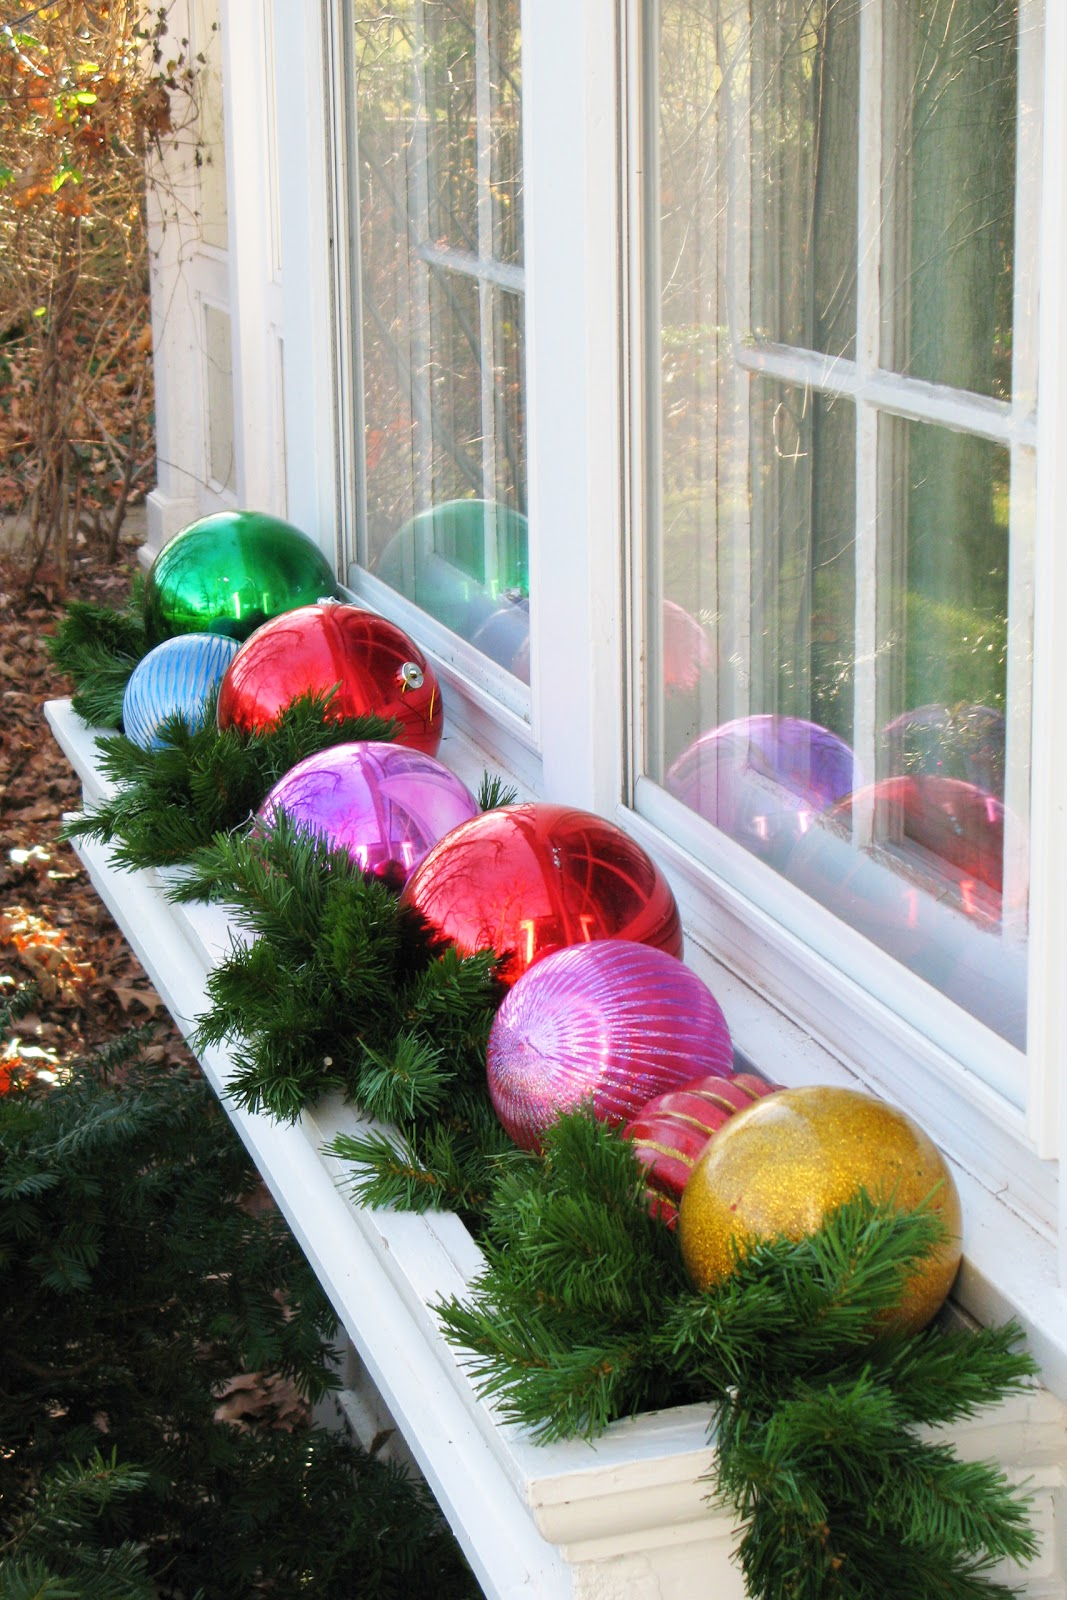 window-box-full-of-colorful ornaments are just one of the many fun Christmas yard decoration ideas